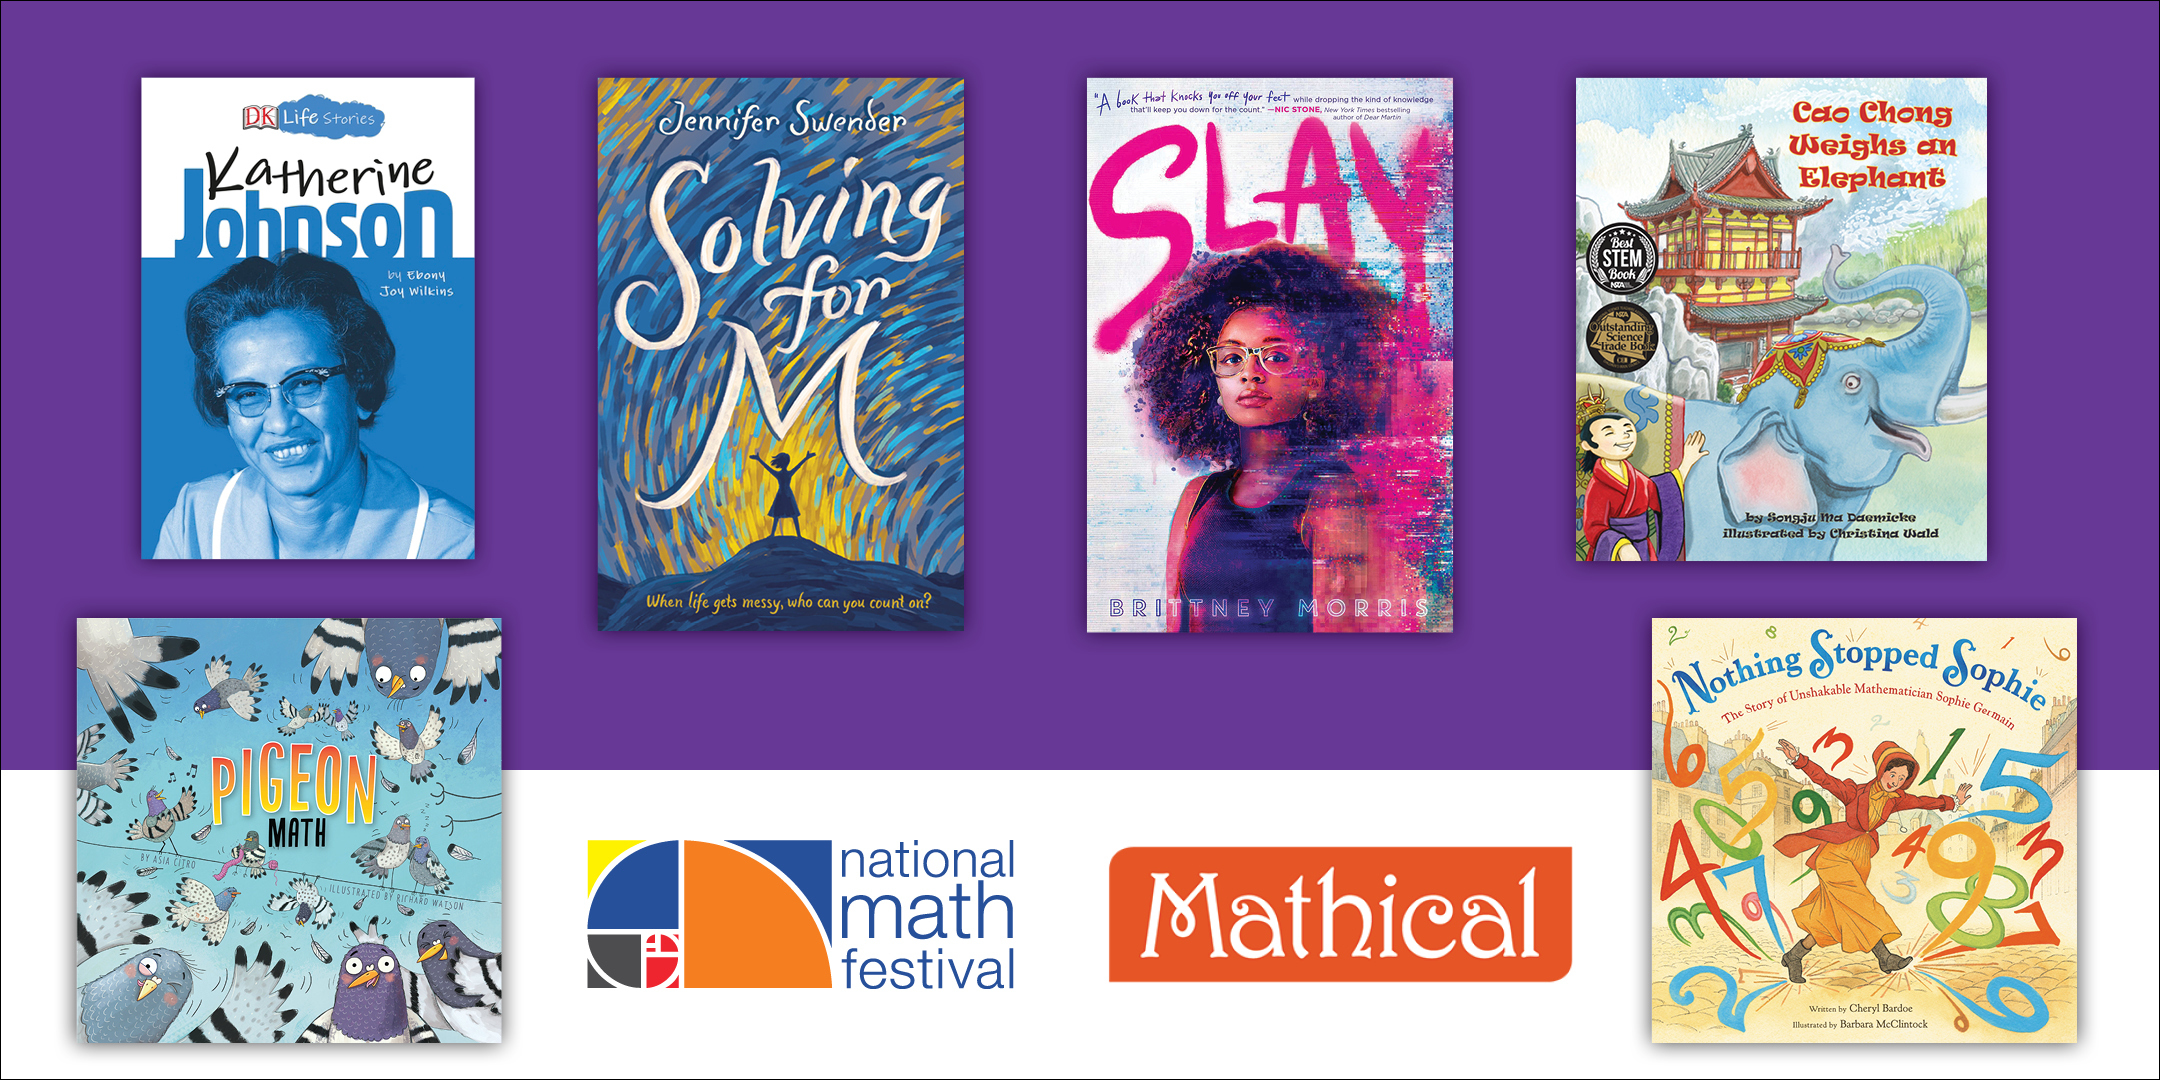 Mathical Book Prize Events